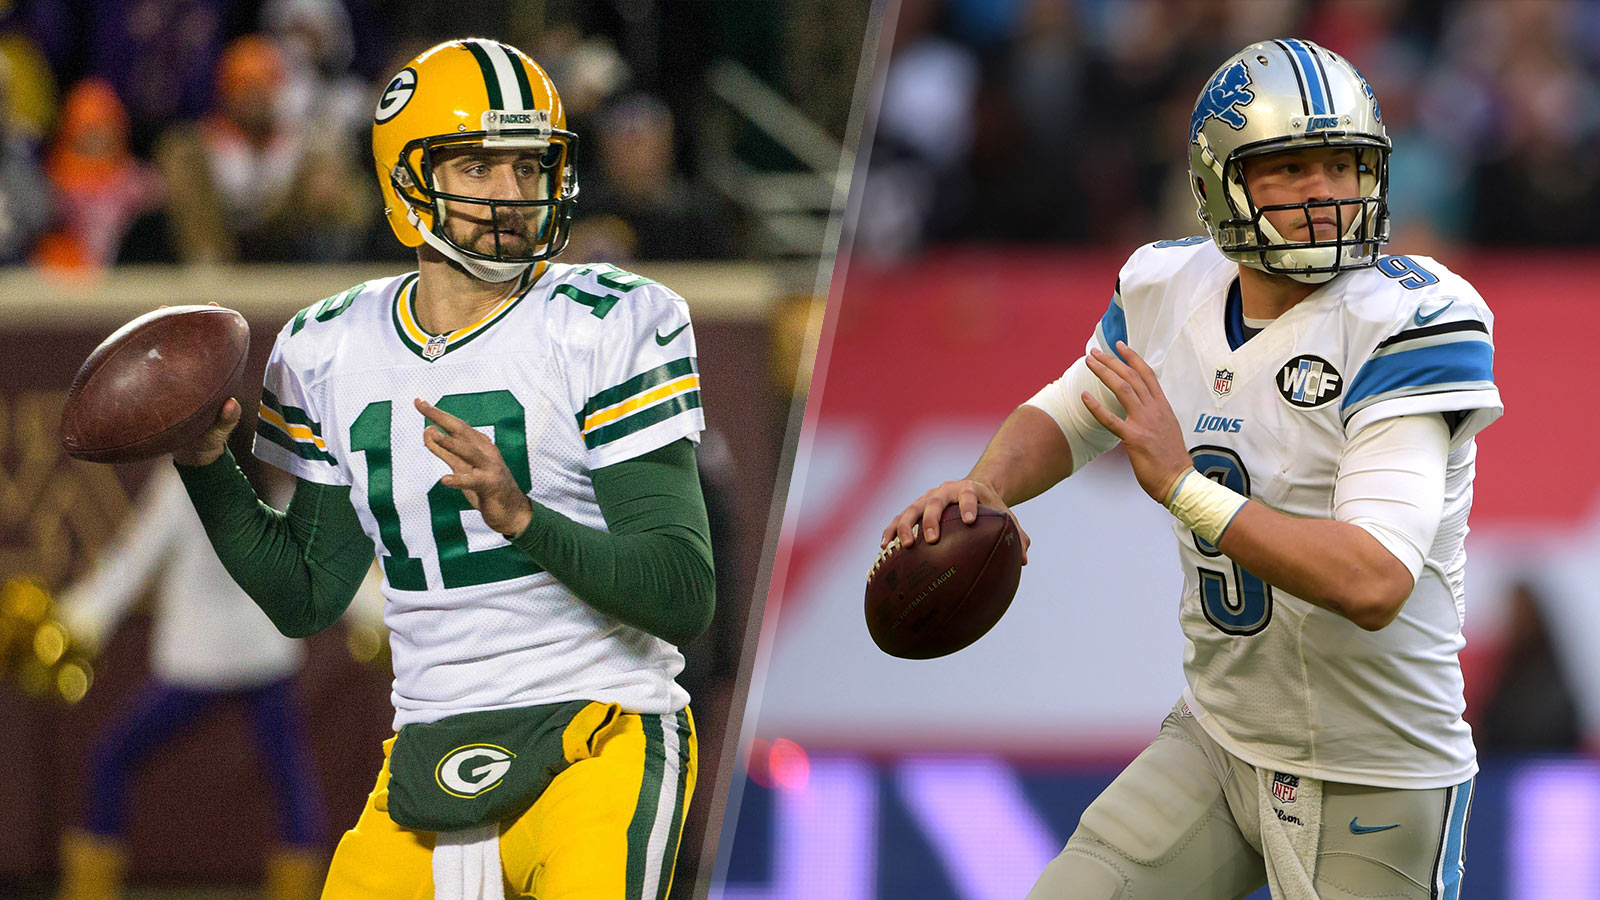 PI-SPLIT-NFL-Packers-Rodgers-Lions-Stafford-120315